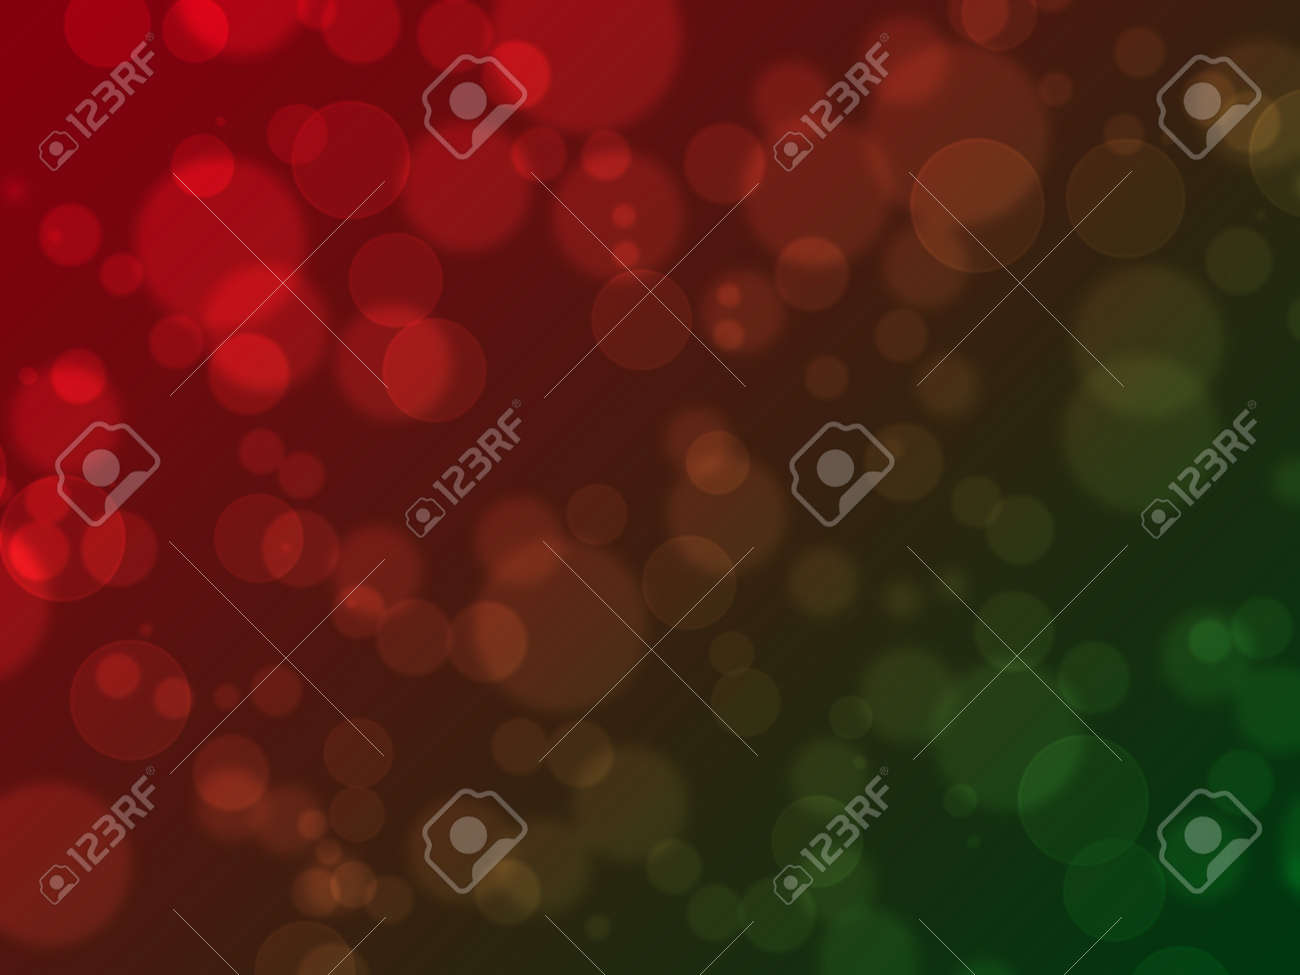 Abstract on a colorful background digital bokeh effect Stock Photo - 14919718